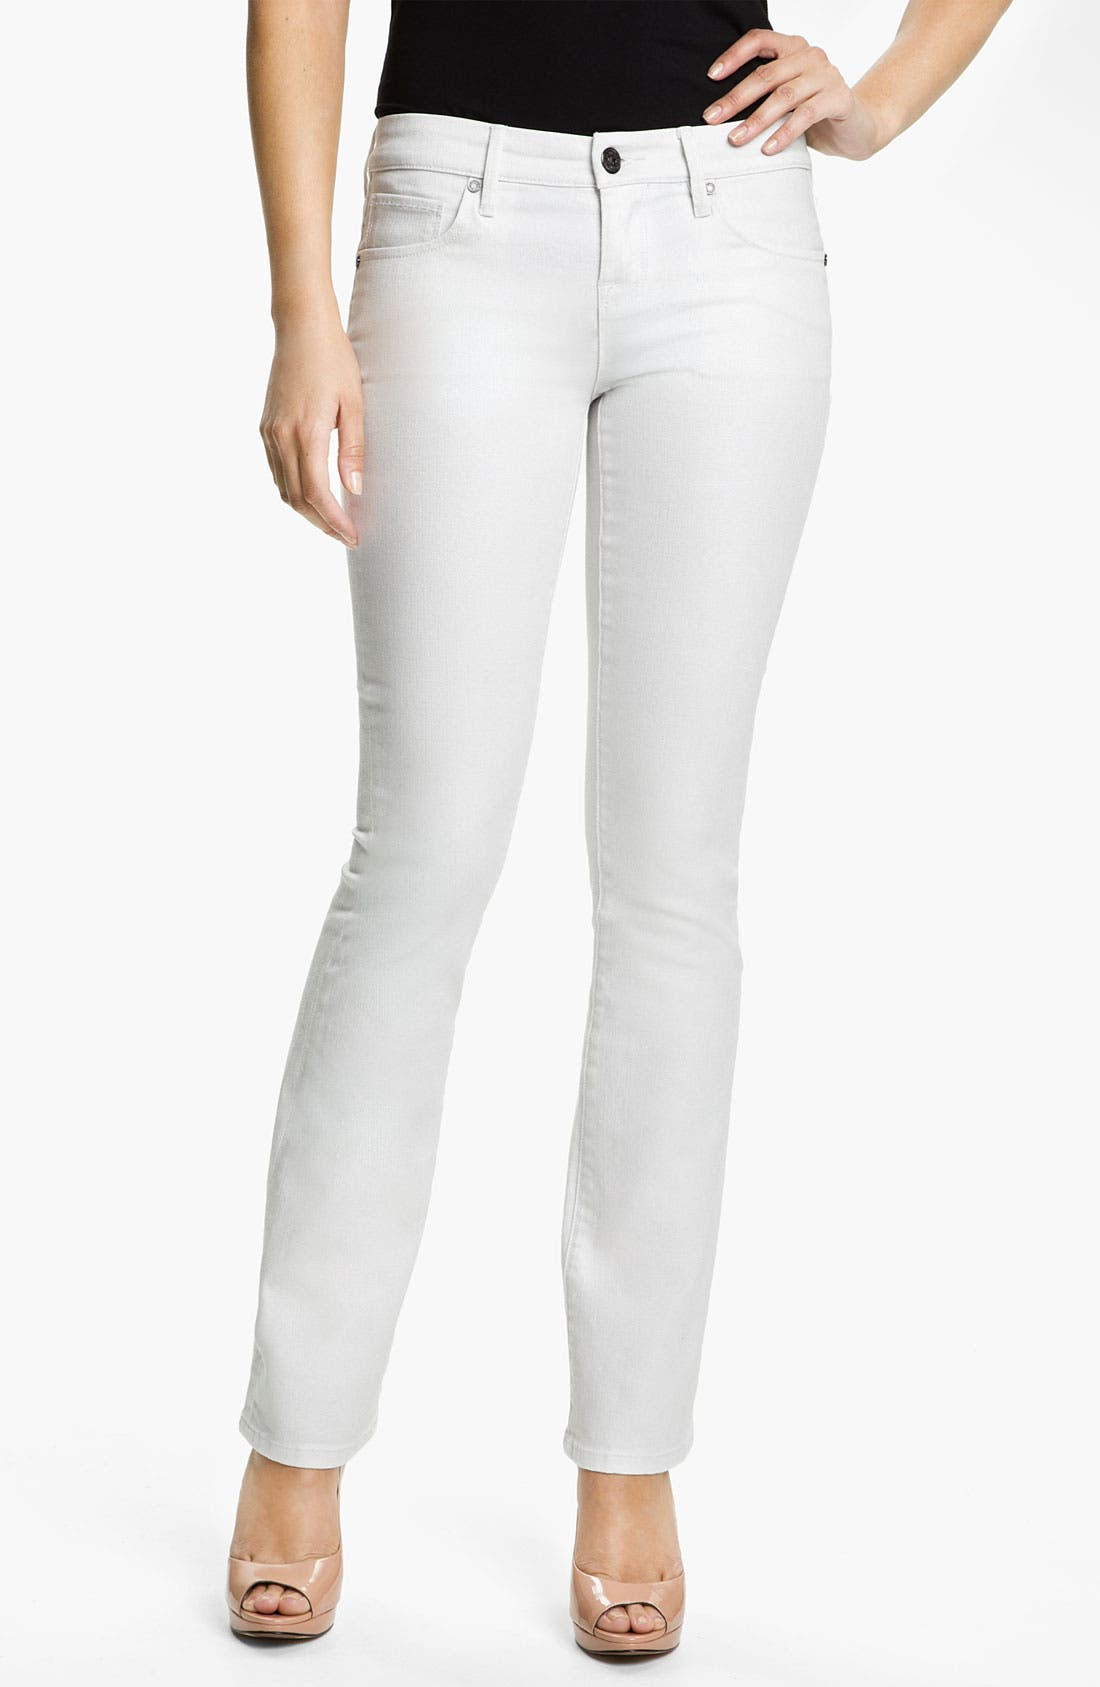 Alternate Image 1 Selected - Isaac Mizrahi Jeans 'Skylar' Slim Bootcut Jeans